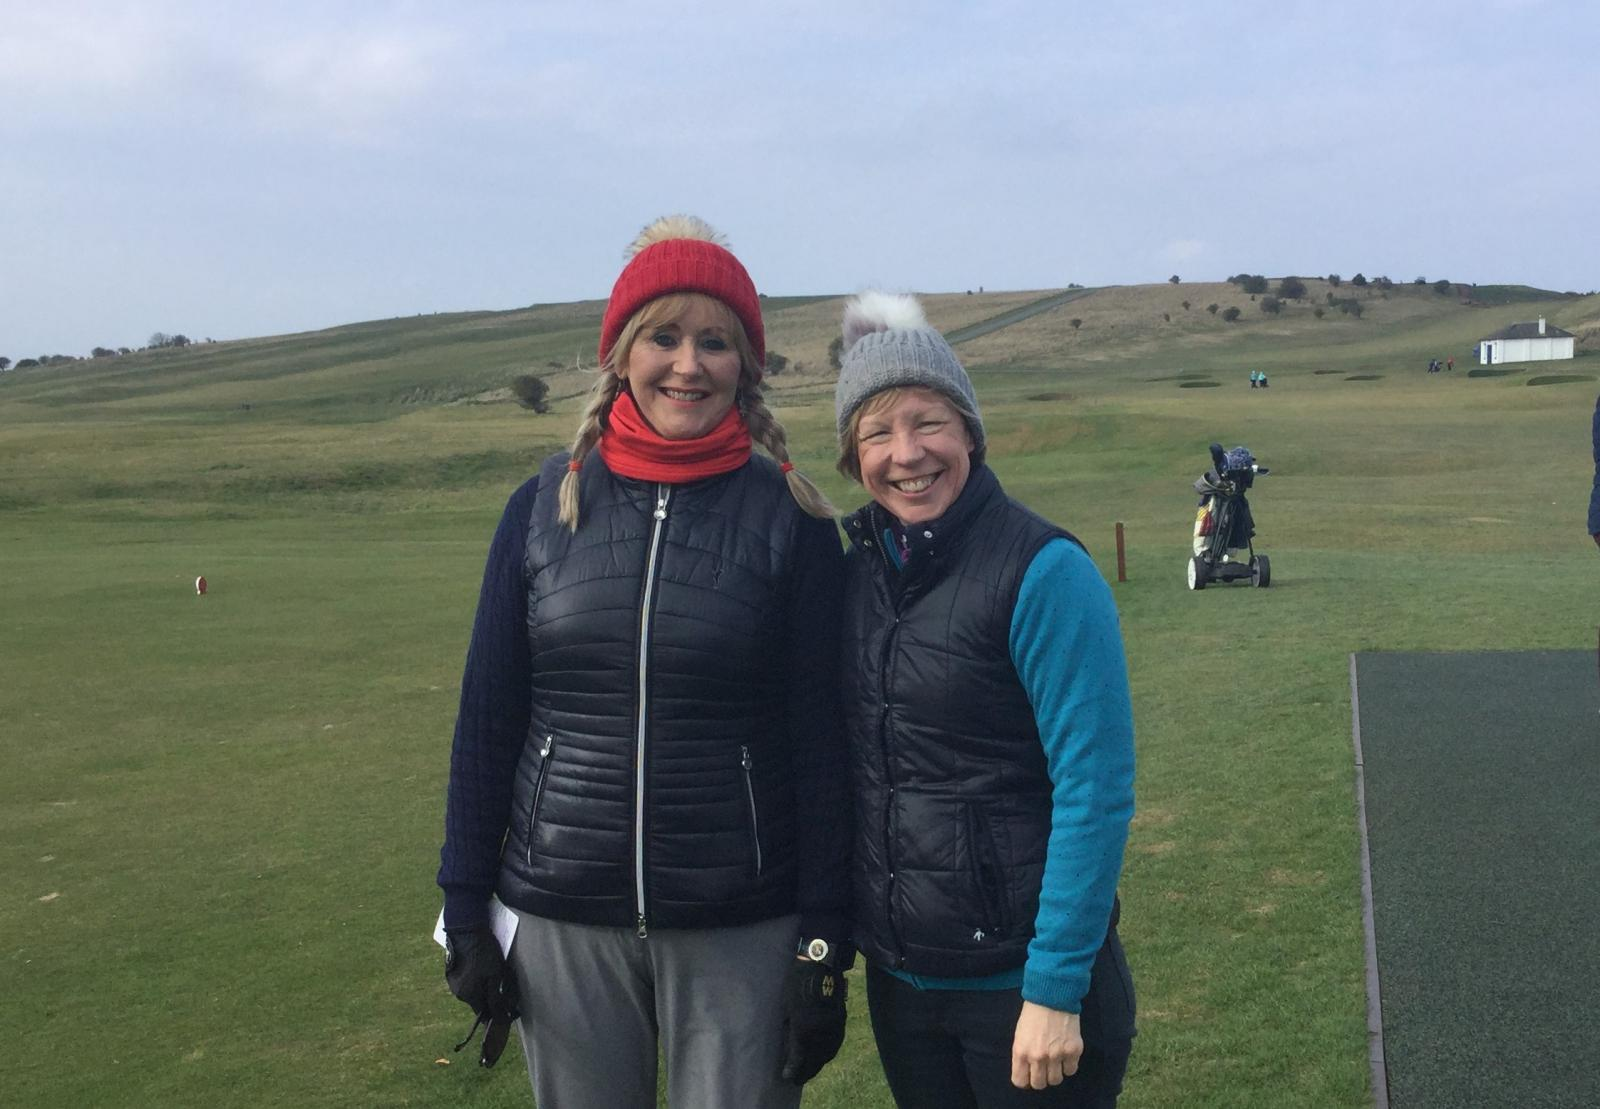 Dressed for the weather, two Gullane golfers in hats and coats